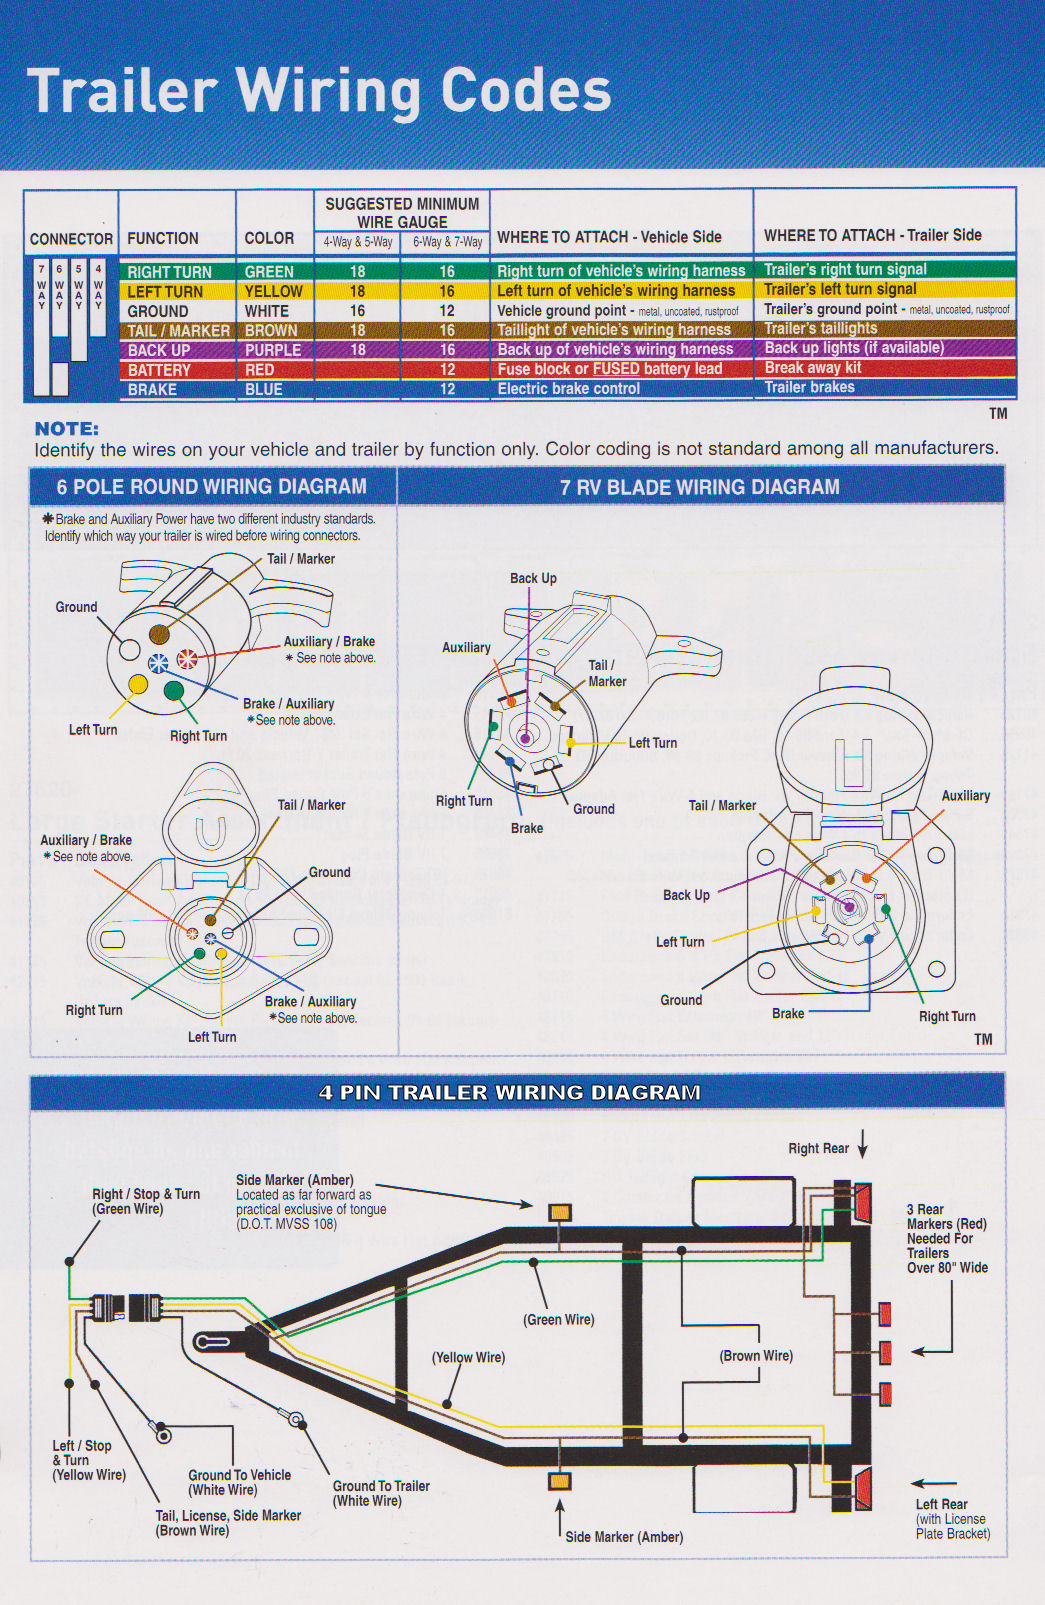 Brake Box Wiring Diagram from d3hbh5btqwflz0.cloudfront.net